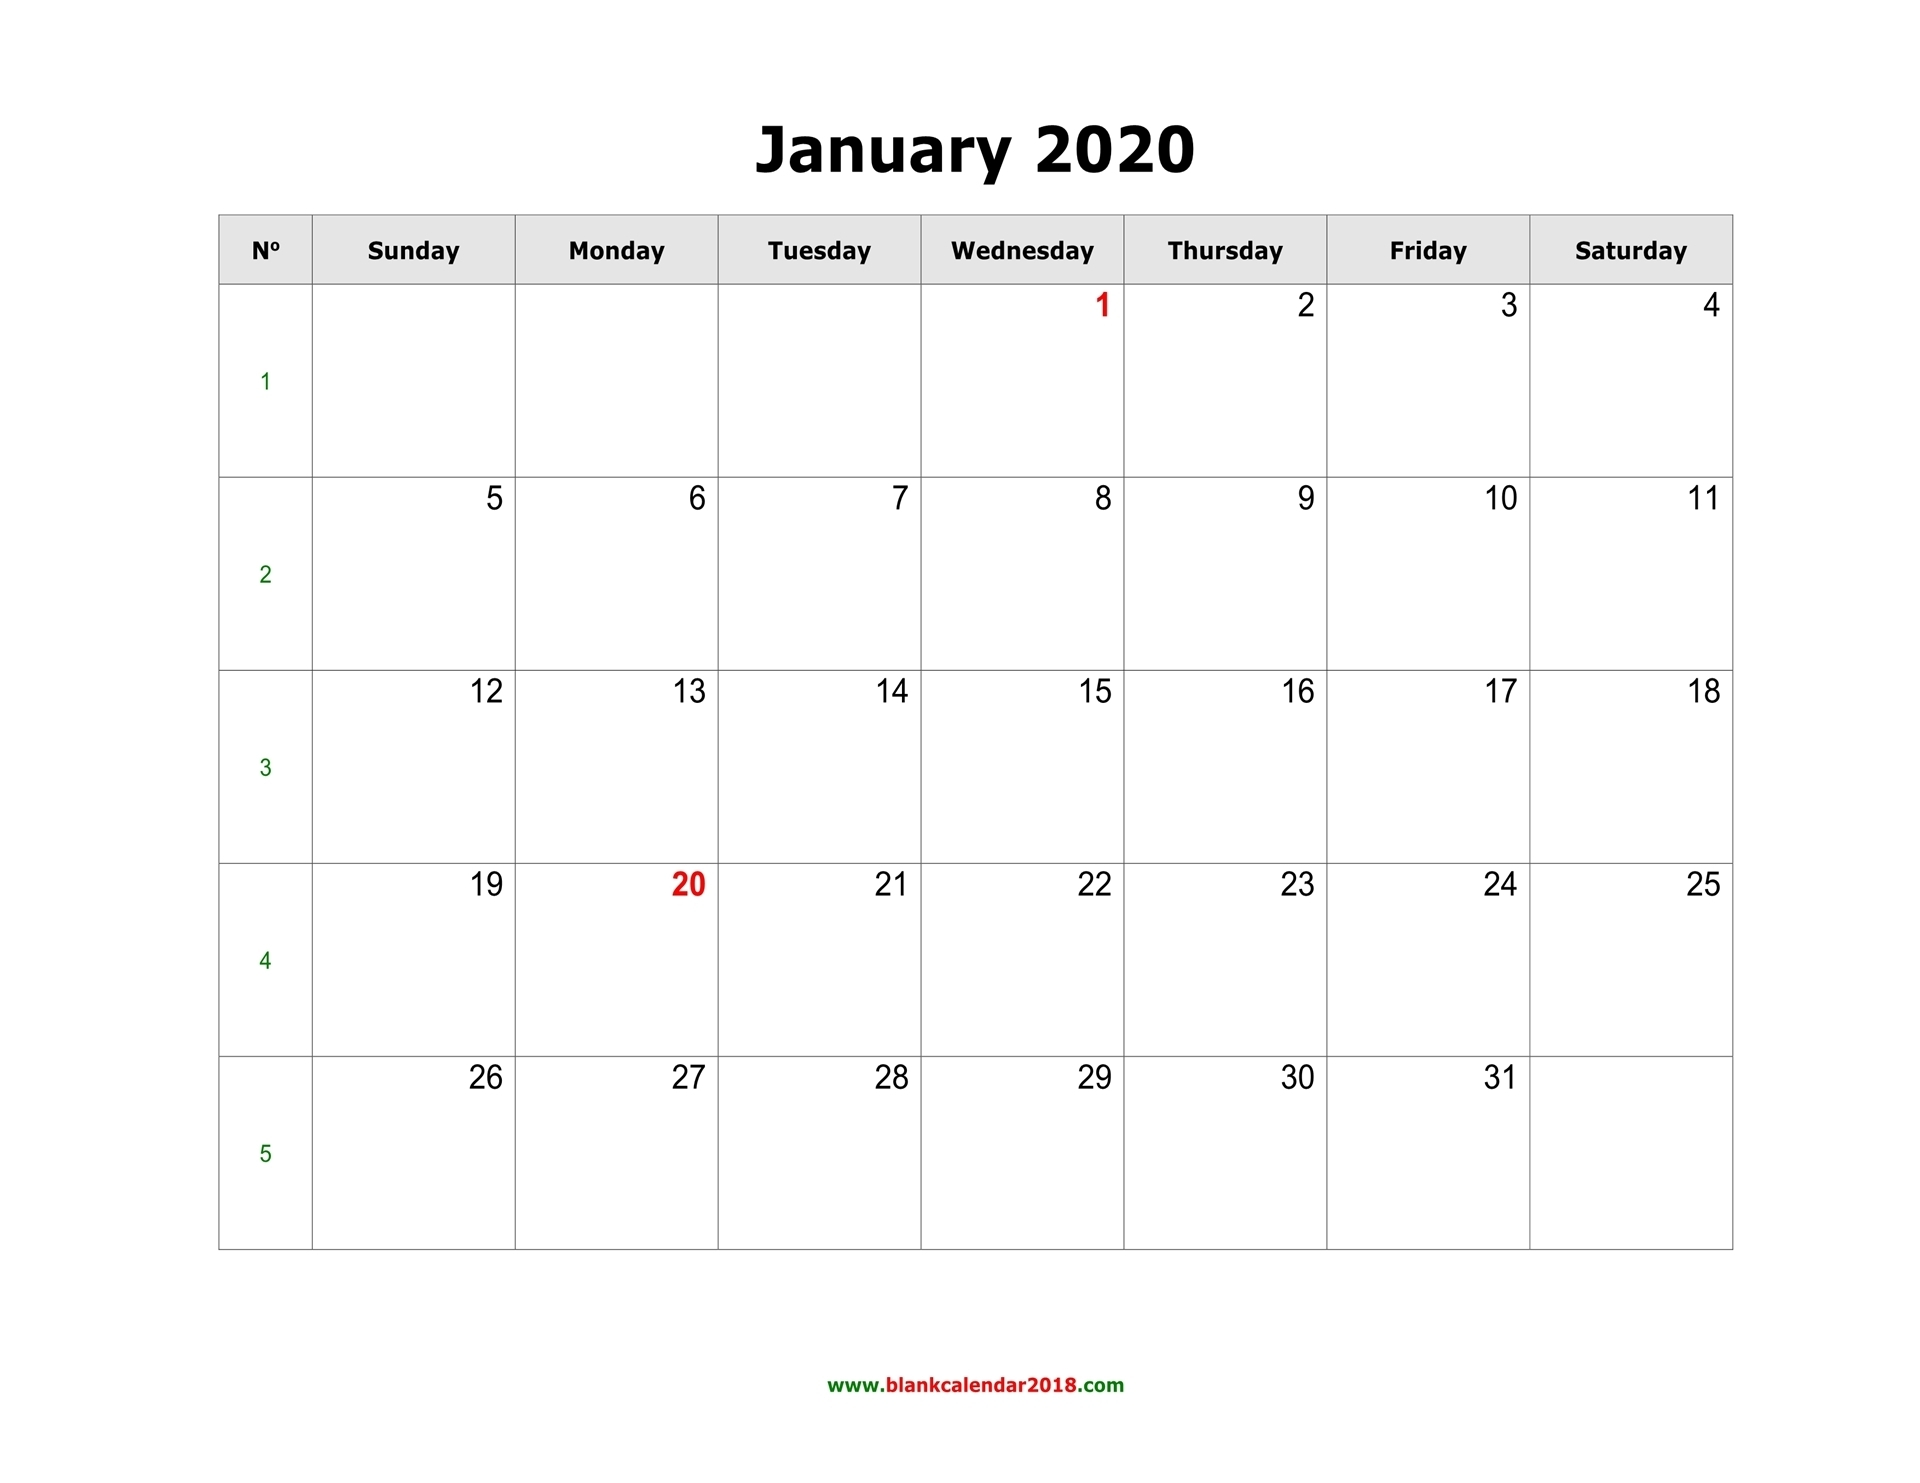 Blank Calendar 2020 with Calender 2020 With Space To Write